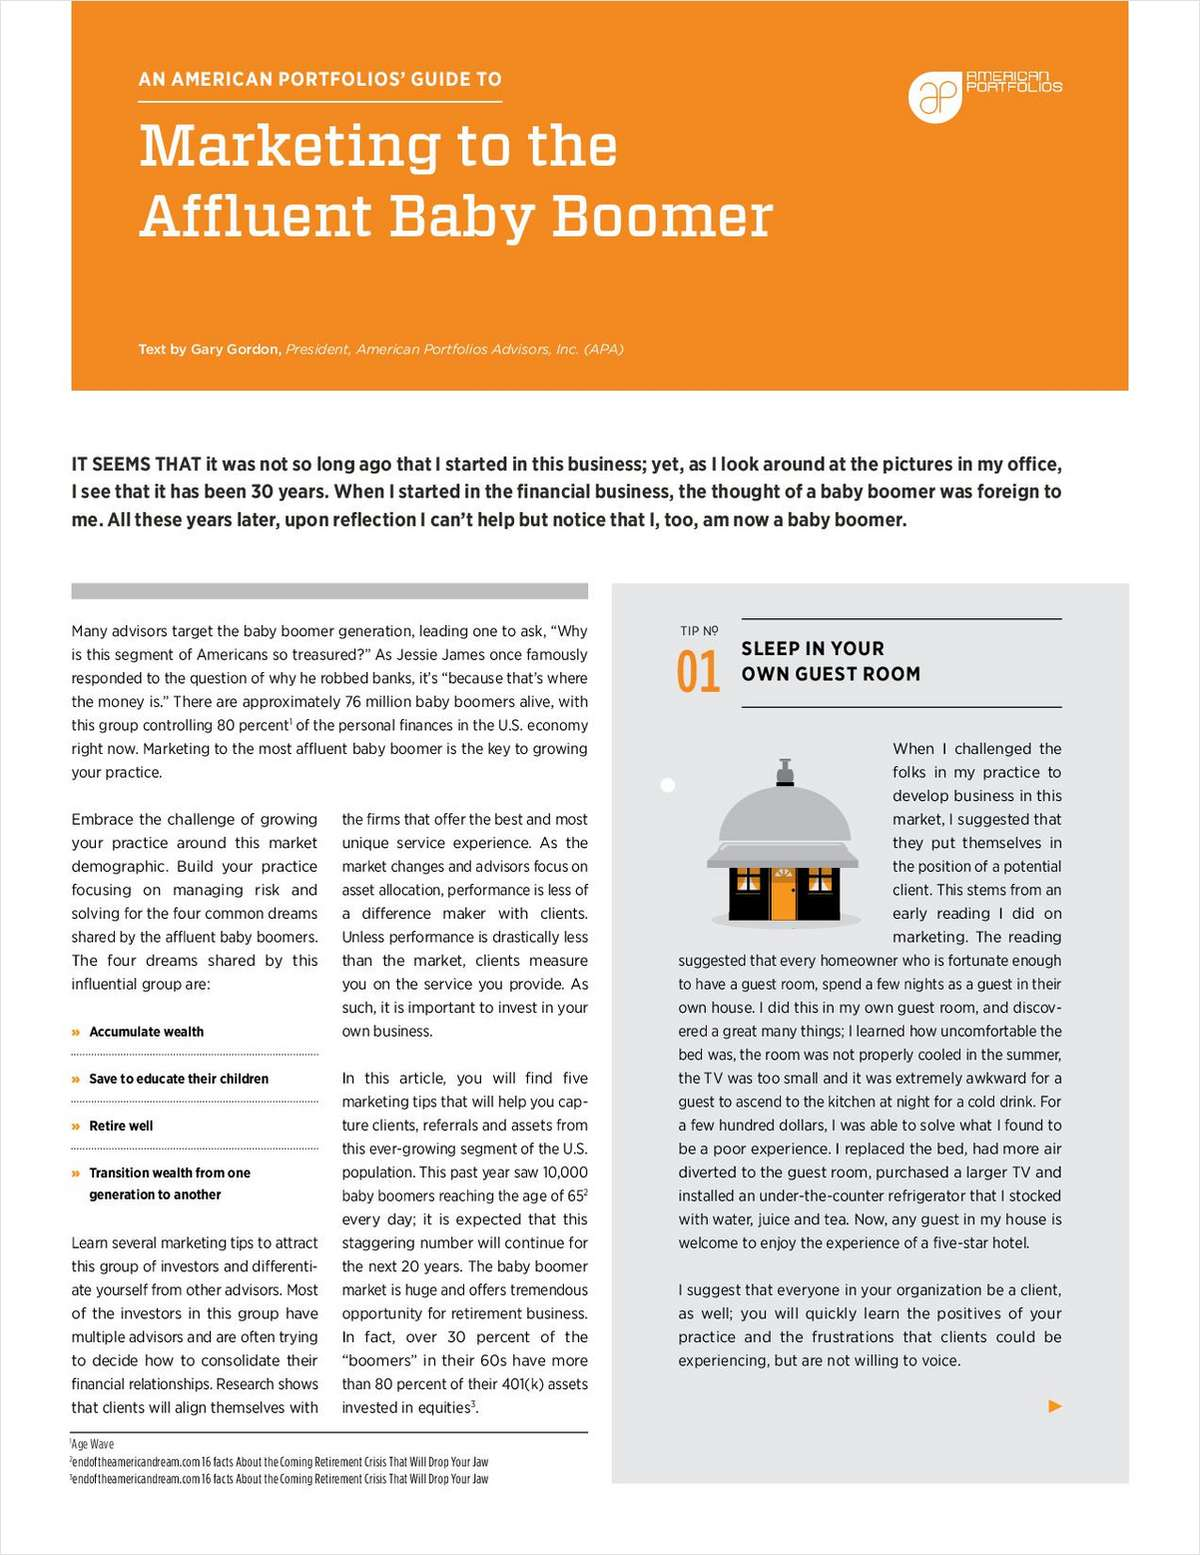 Marketing to the Affluent Baby Boomer